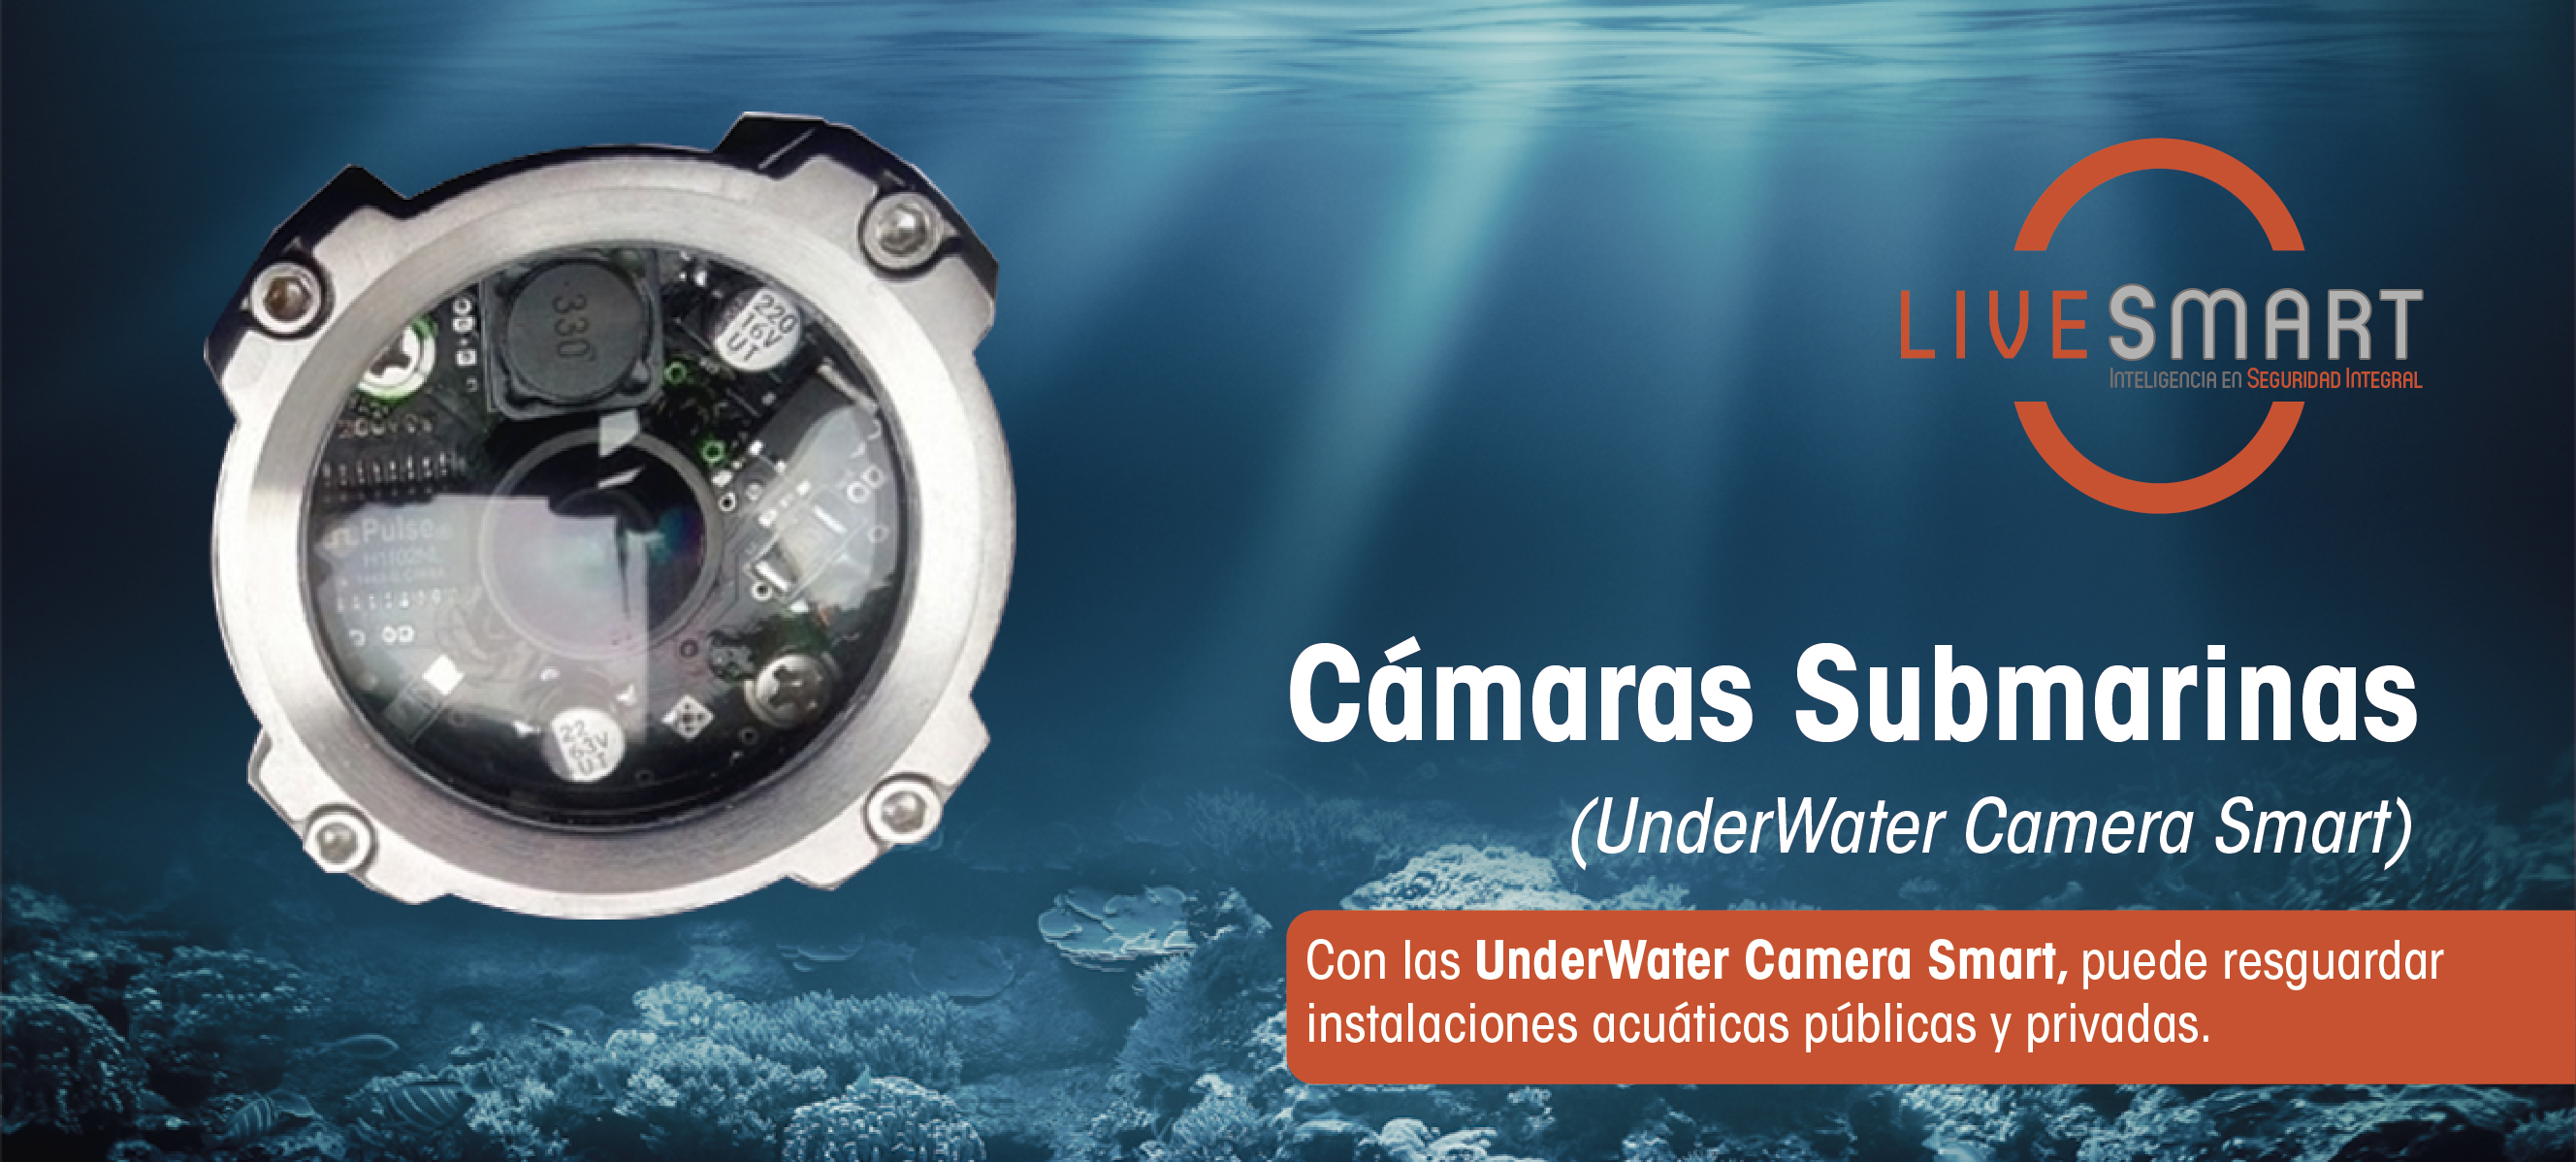 https://livesmart.cl/wp-content/uploads/2018/12/camara-water.jpg